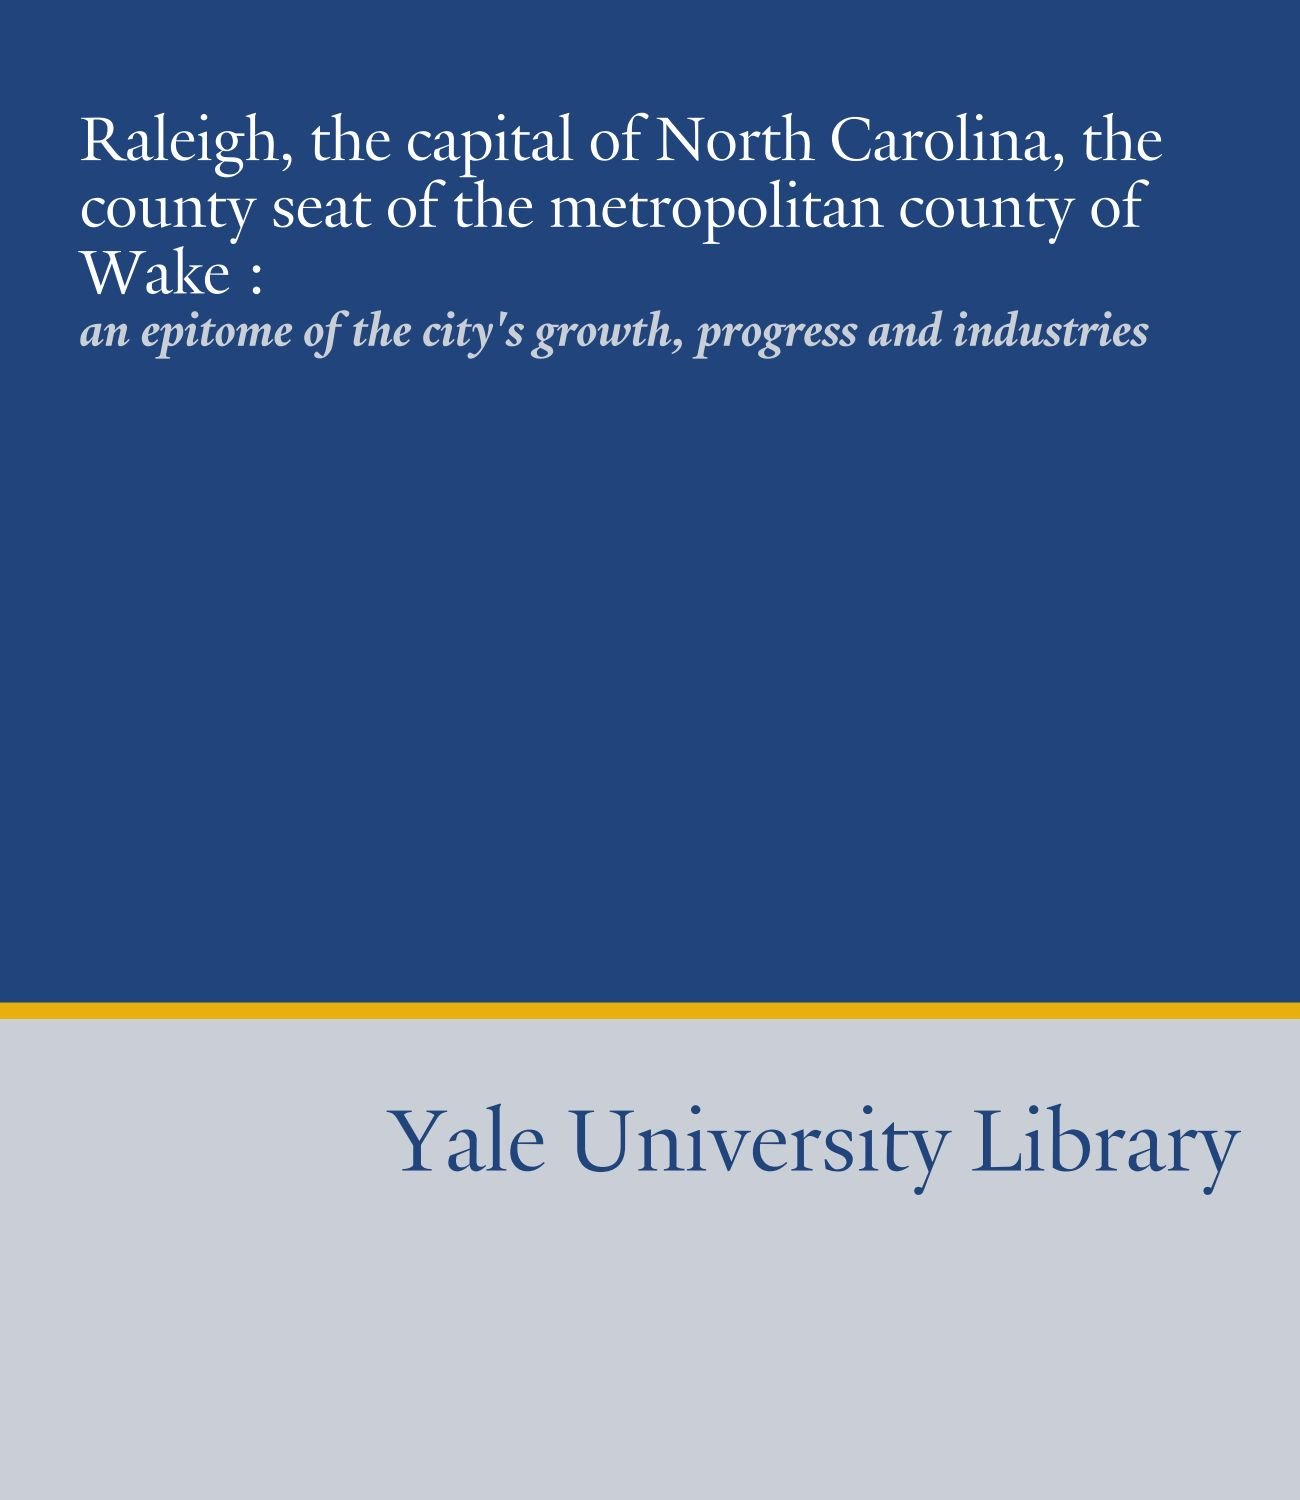 Read Online Raleigh, the capital of North Carolina, the county seat of the metropolitan county of Wake :: an epitome of the city's growth, progress and industries ebook